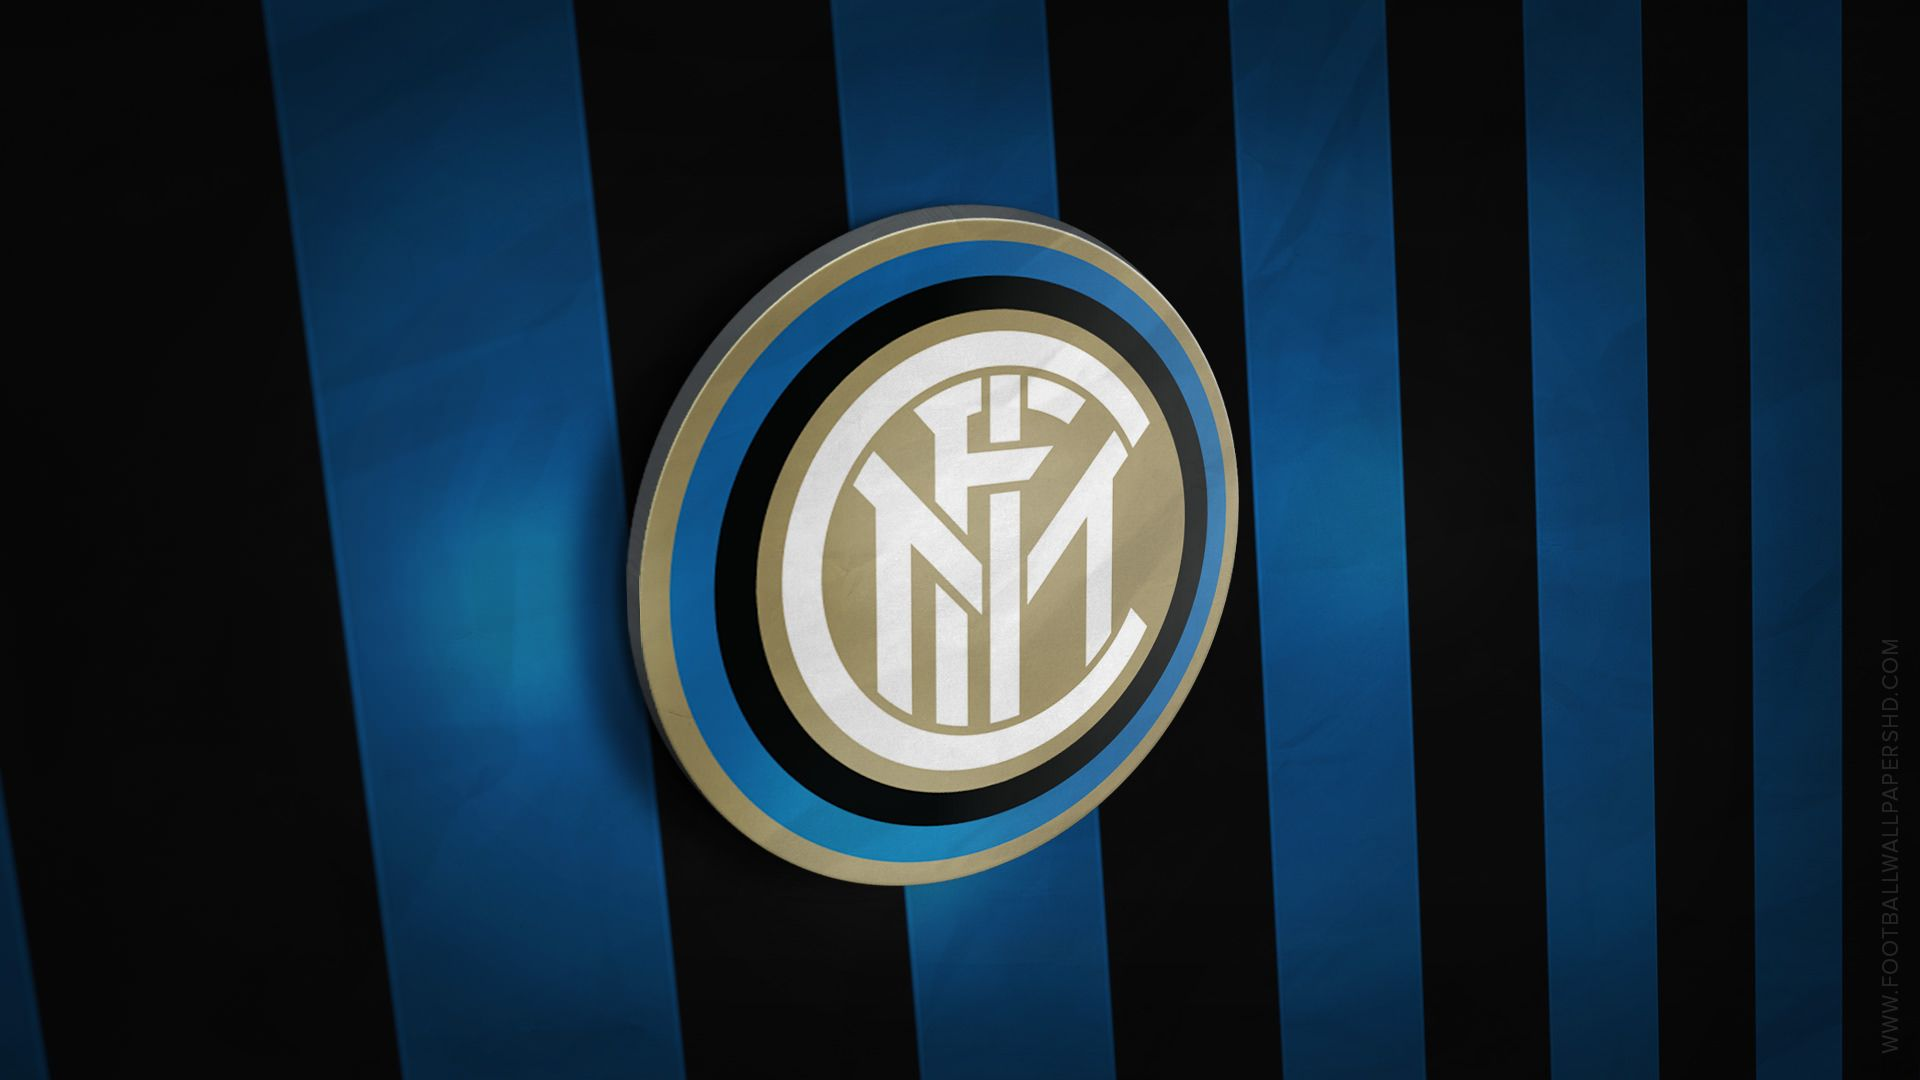 Gambar Wallpaper Ac Milan Keren Inter Milan 1920x1080 Download Hd Wallpaper Wallpapertip